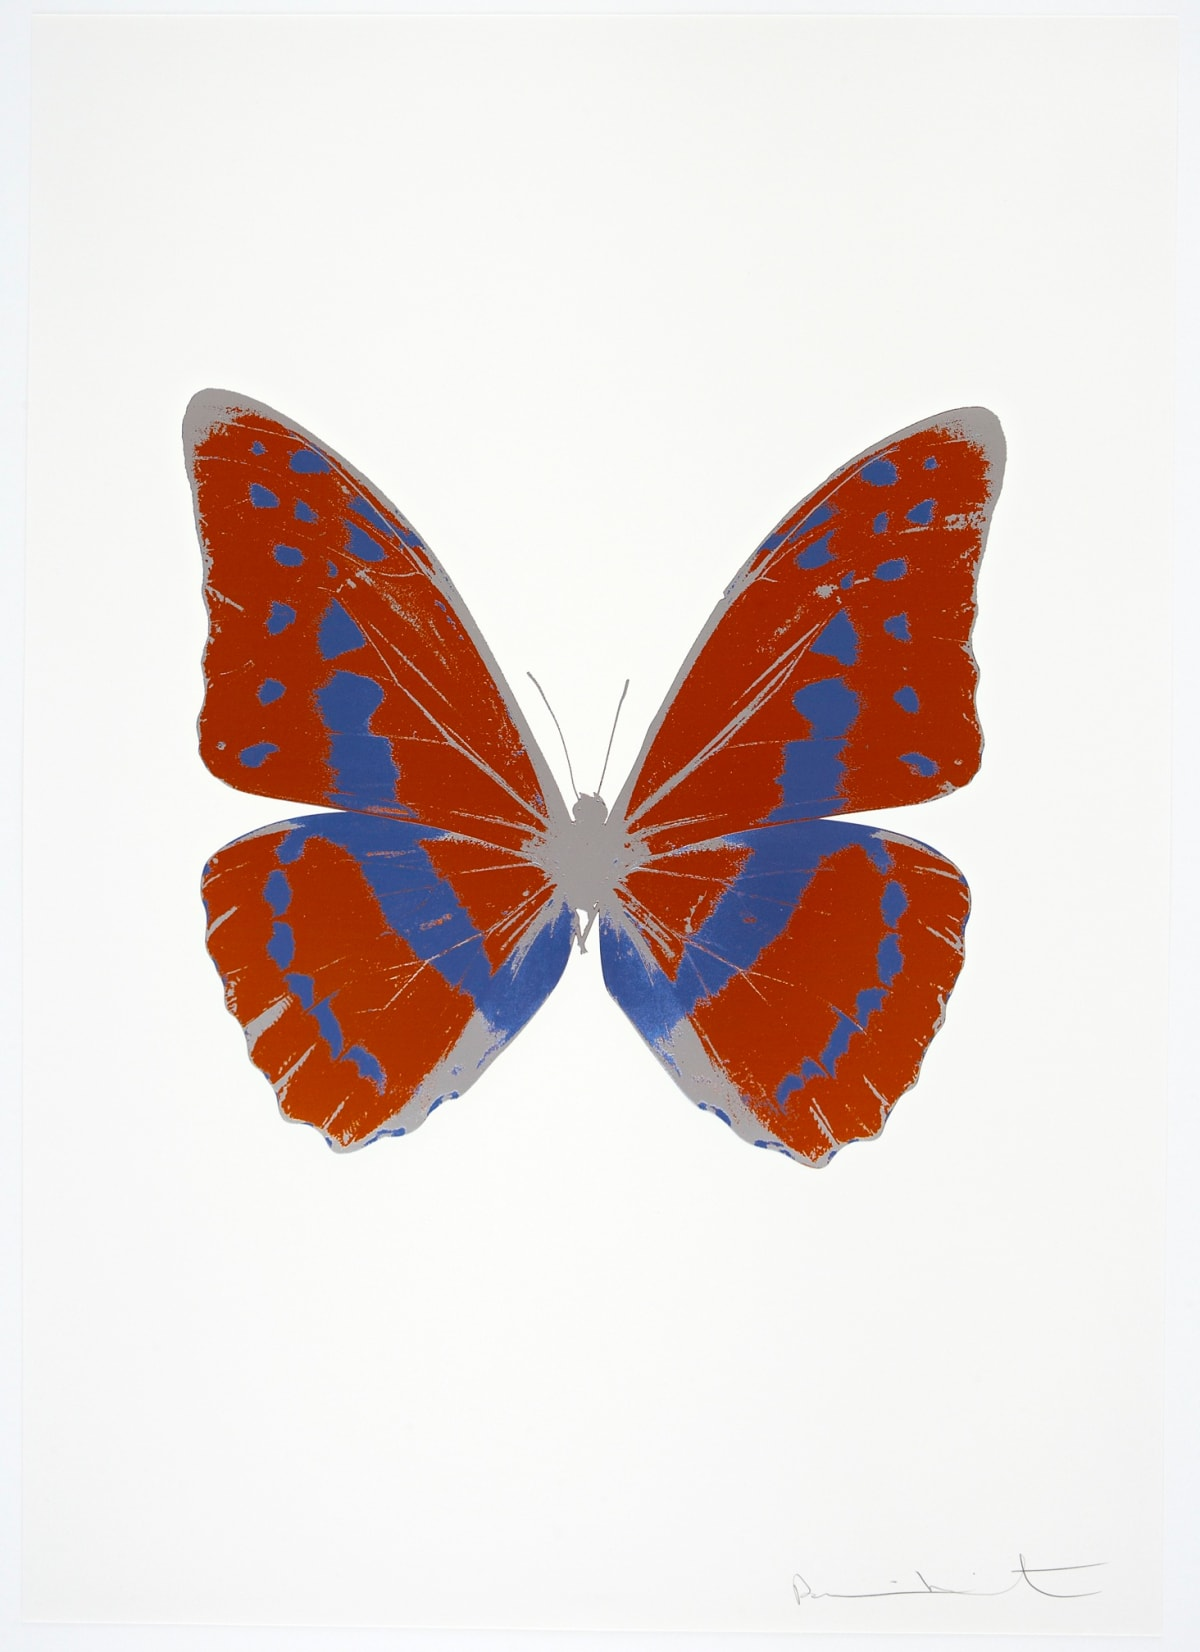 Damien Hirst The Souls III - Prairie Copper/Frost Blue/Silver Gloss, 2010 3 colour foil block on 300gsm Arches 88 archival paper. Signed and numbered. Published by Paul Stolper and Other Criteria 72 x 51cm OC7917 / 660-20 Edition of 15